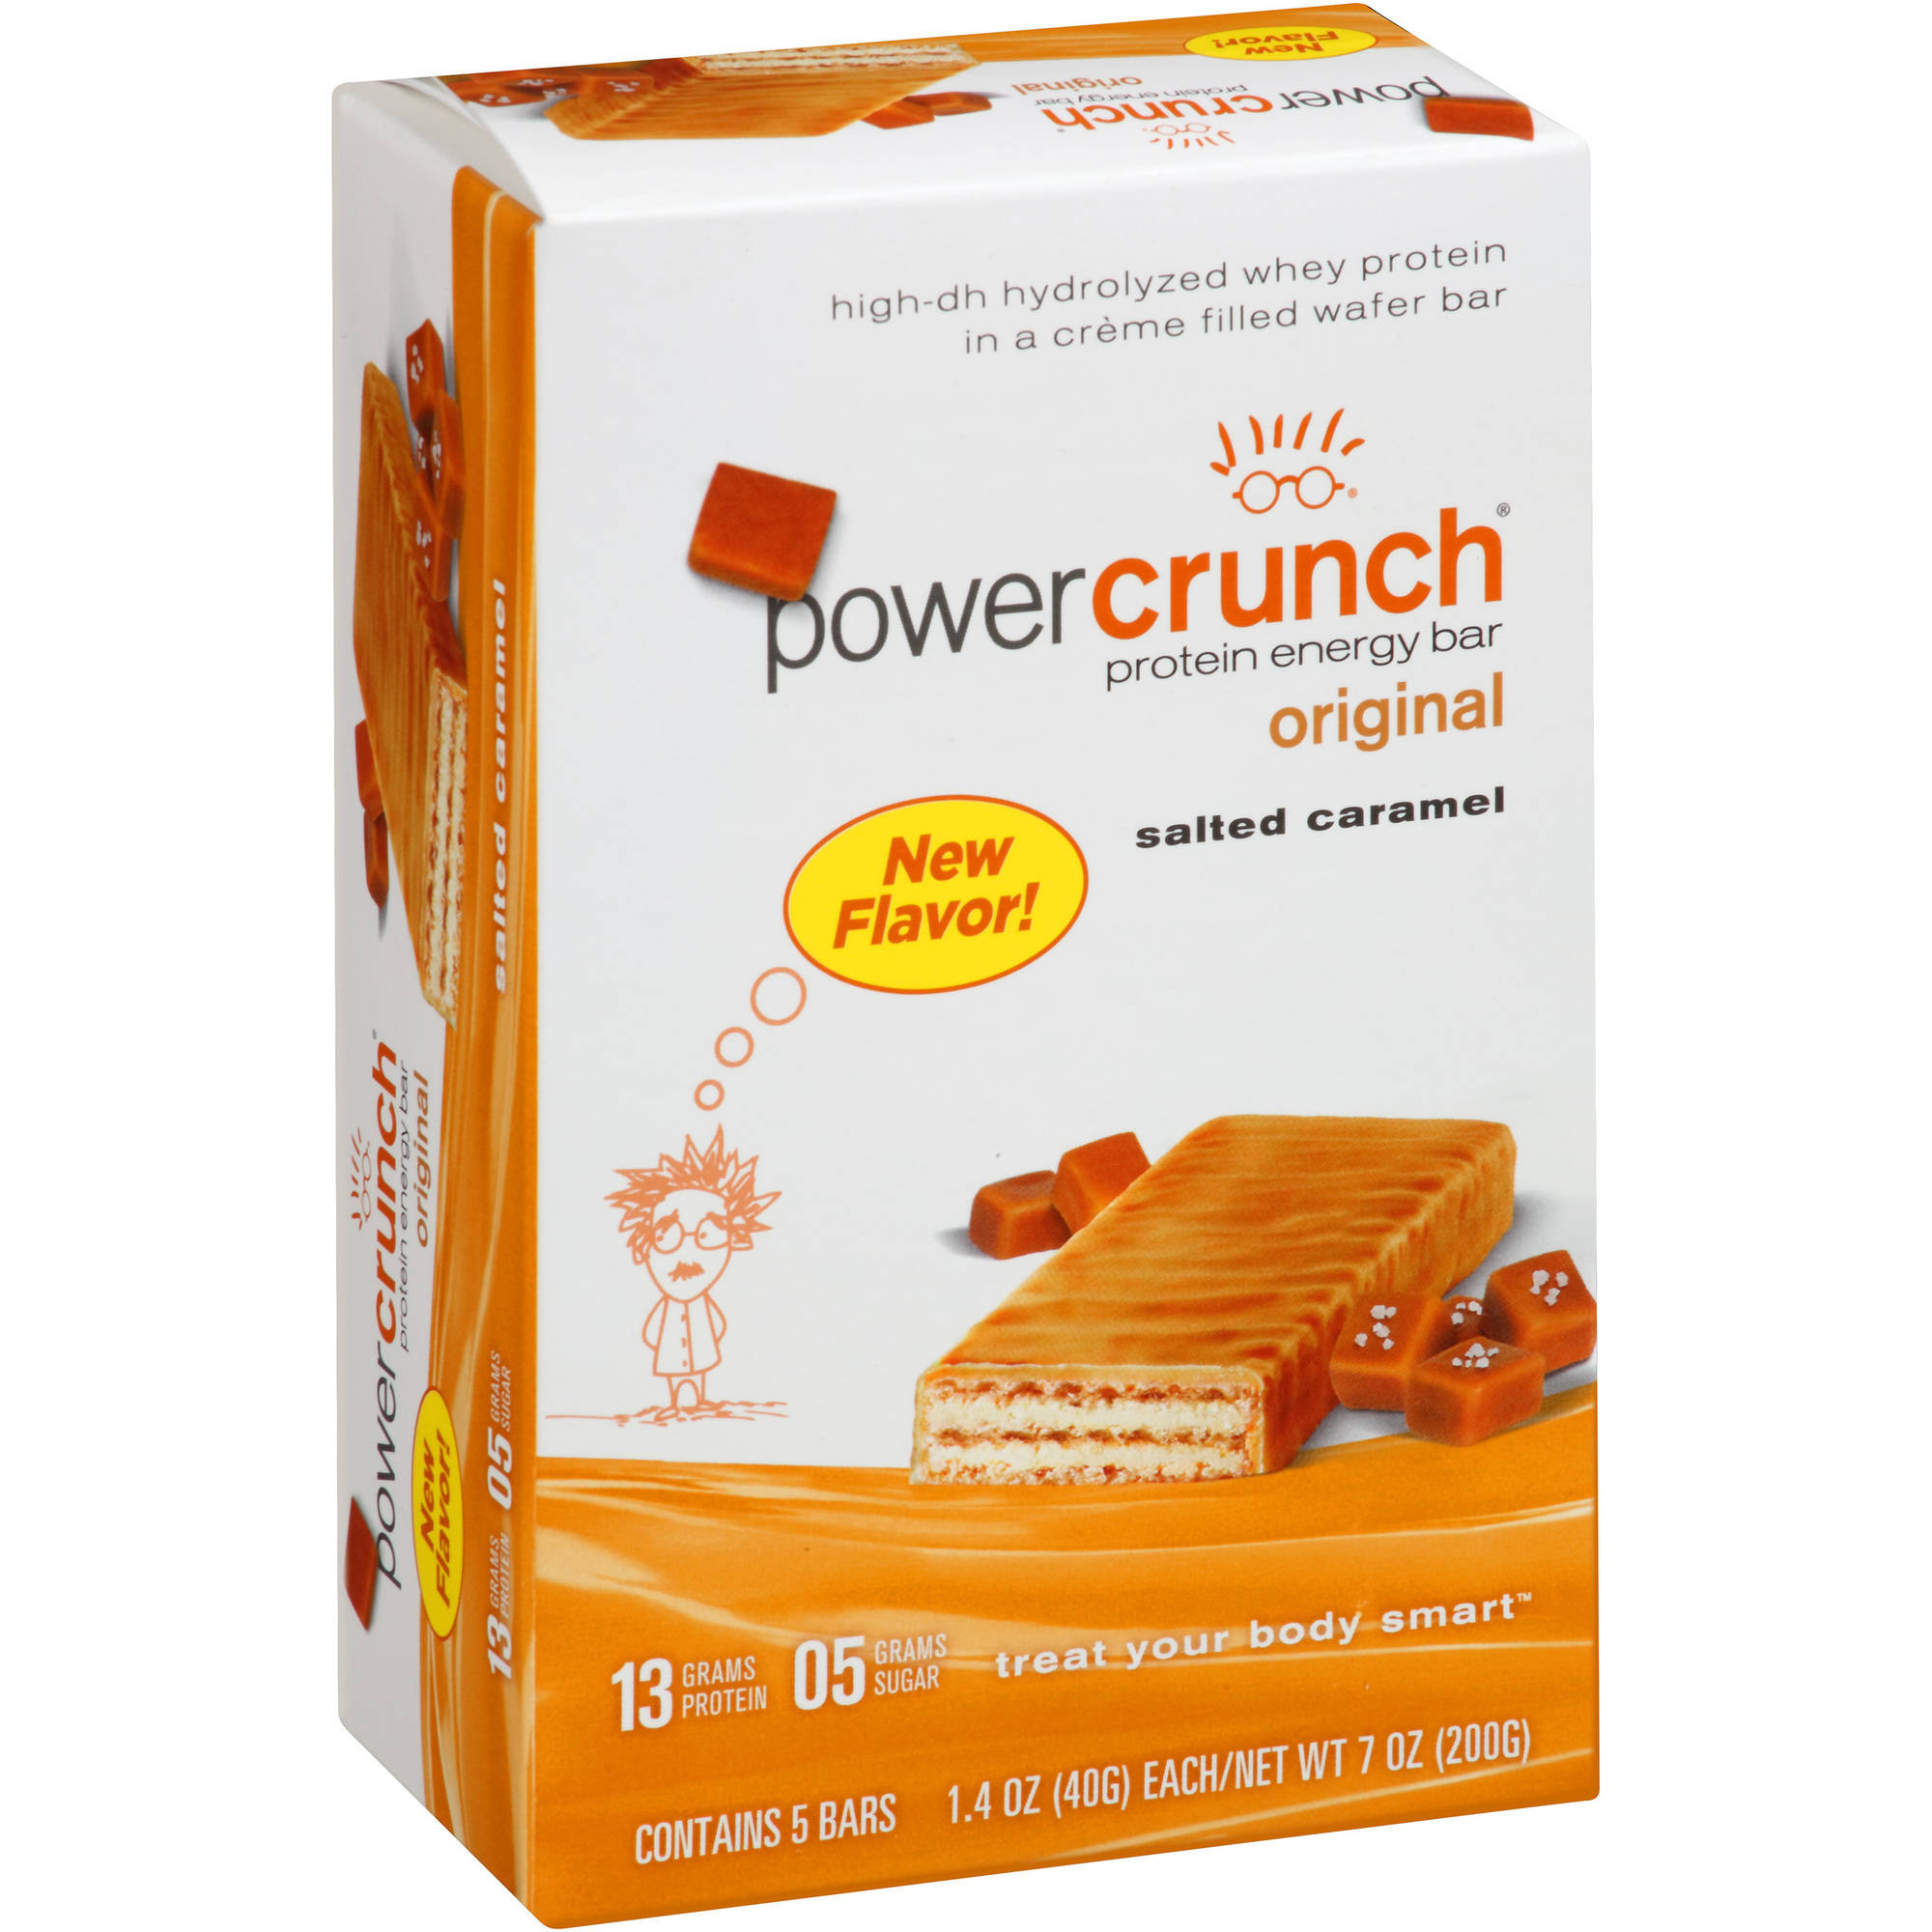 Power Crunch Original Salted Caramel Protein Energy Bars, 1.4 oz, 5 count